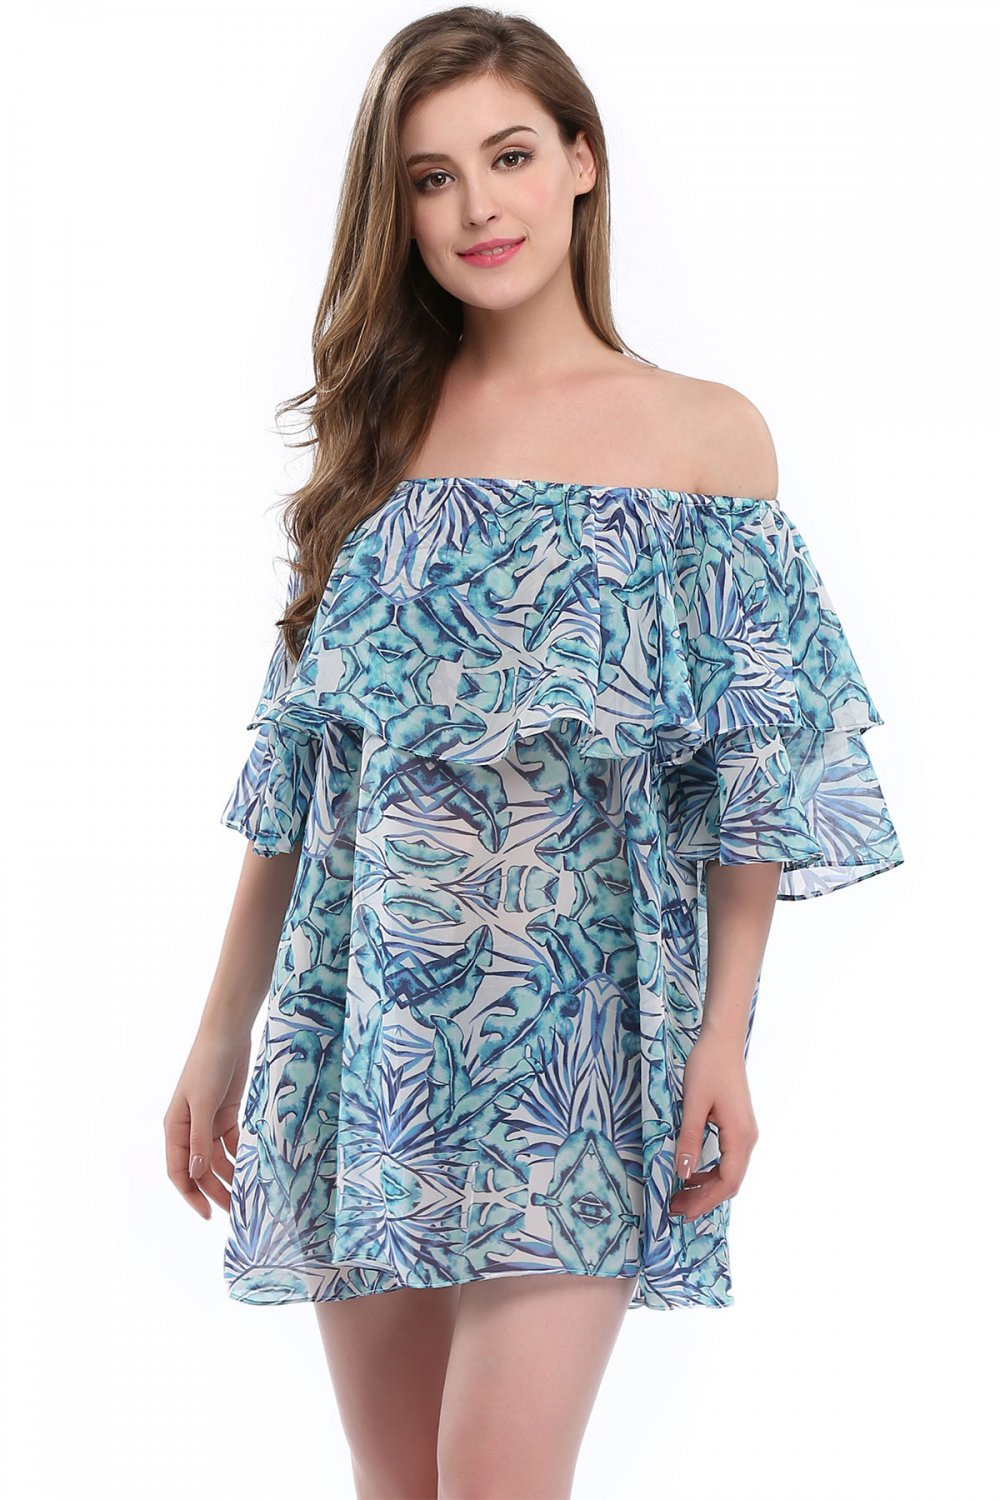 Double Layer Off The Shoulder Fashion S-XL Size Blue Ruffle Beach Dress W351018